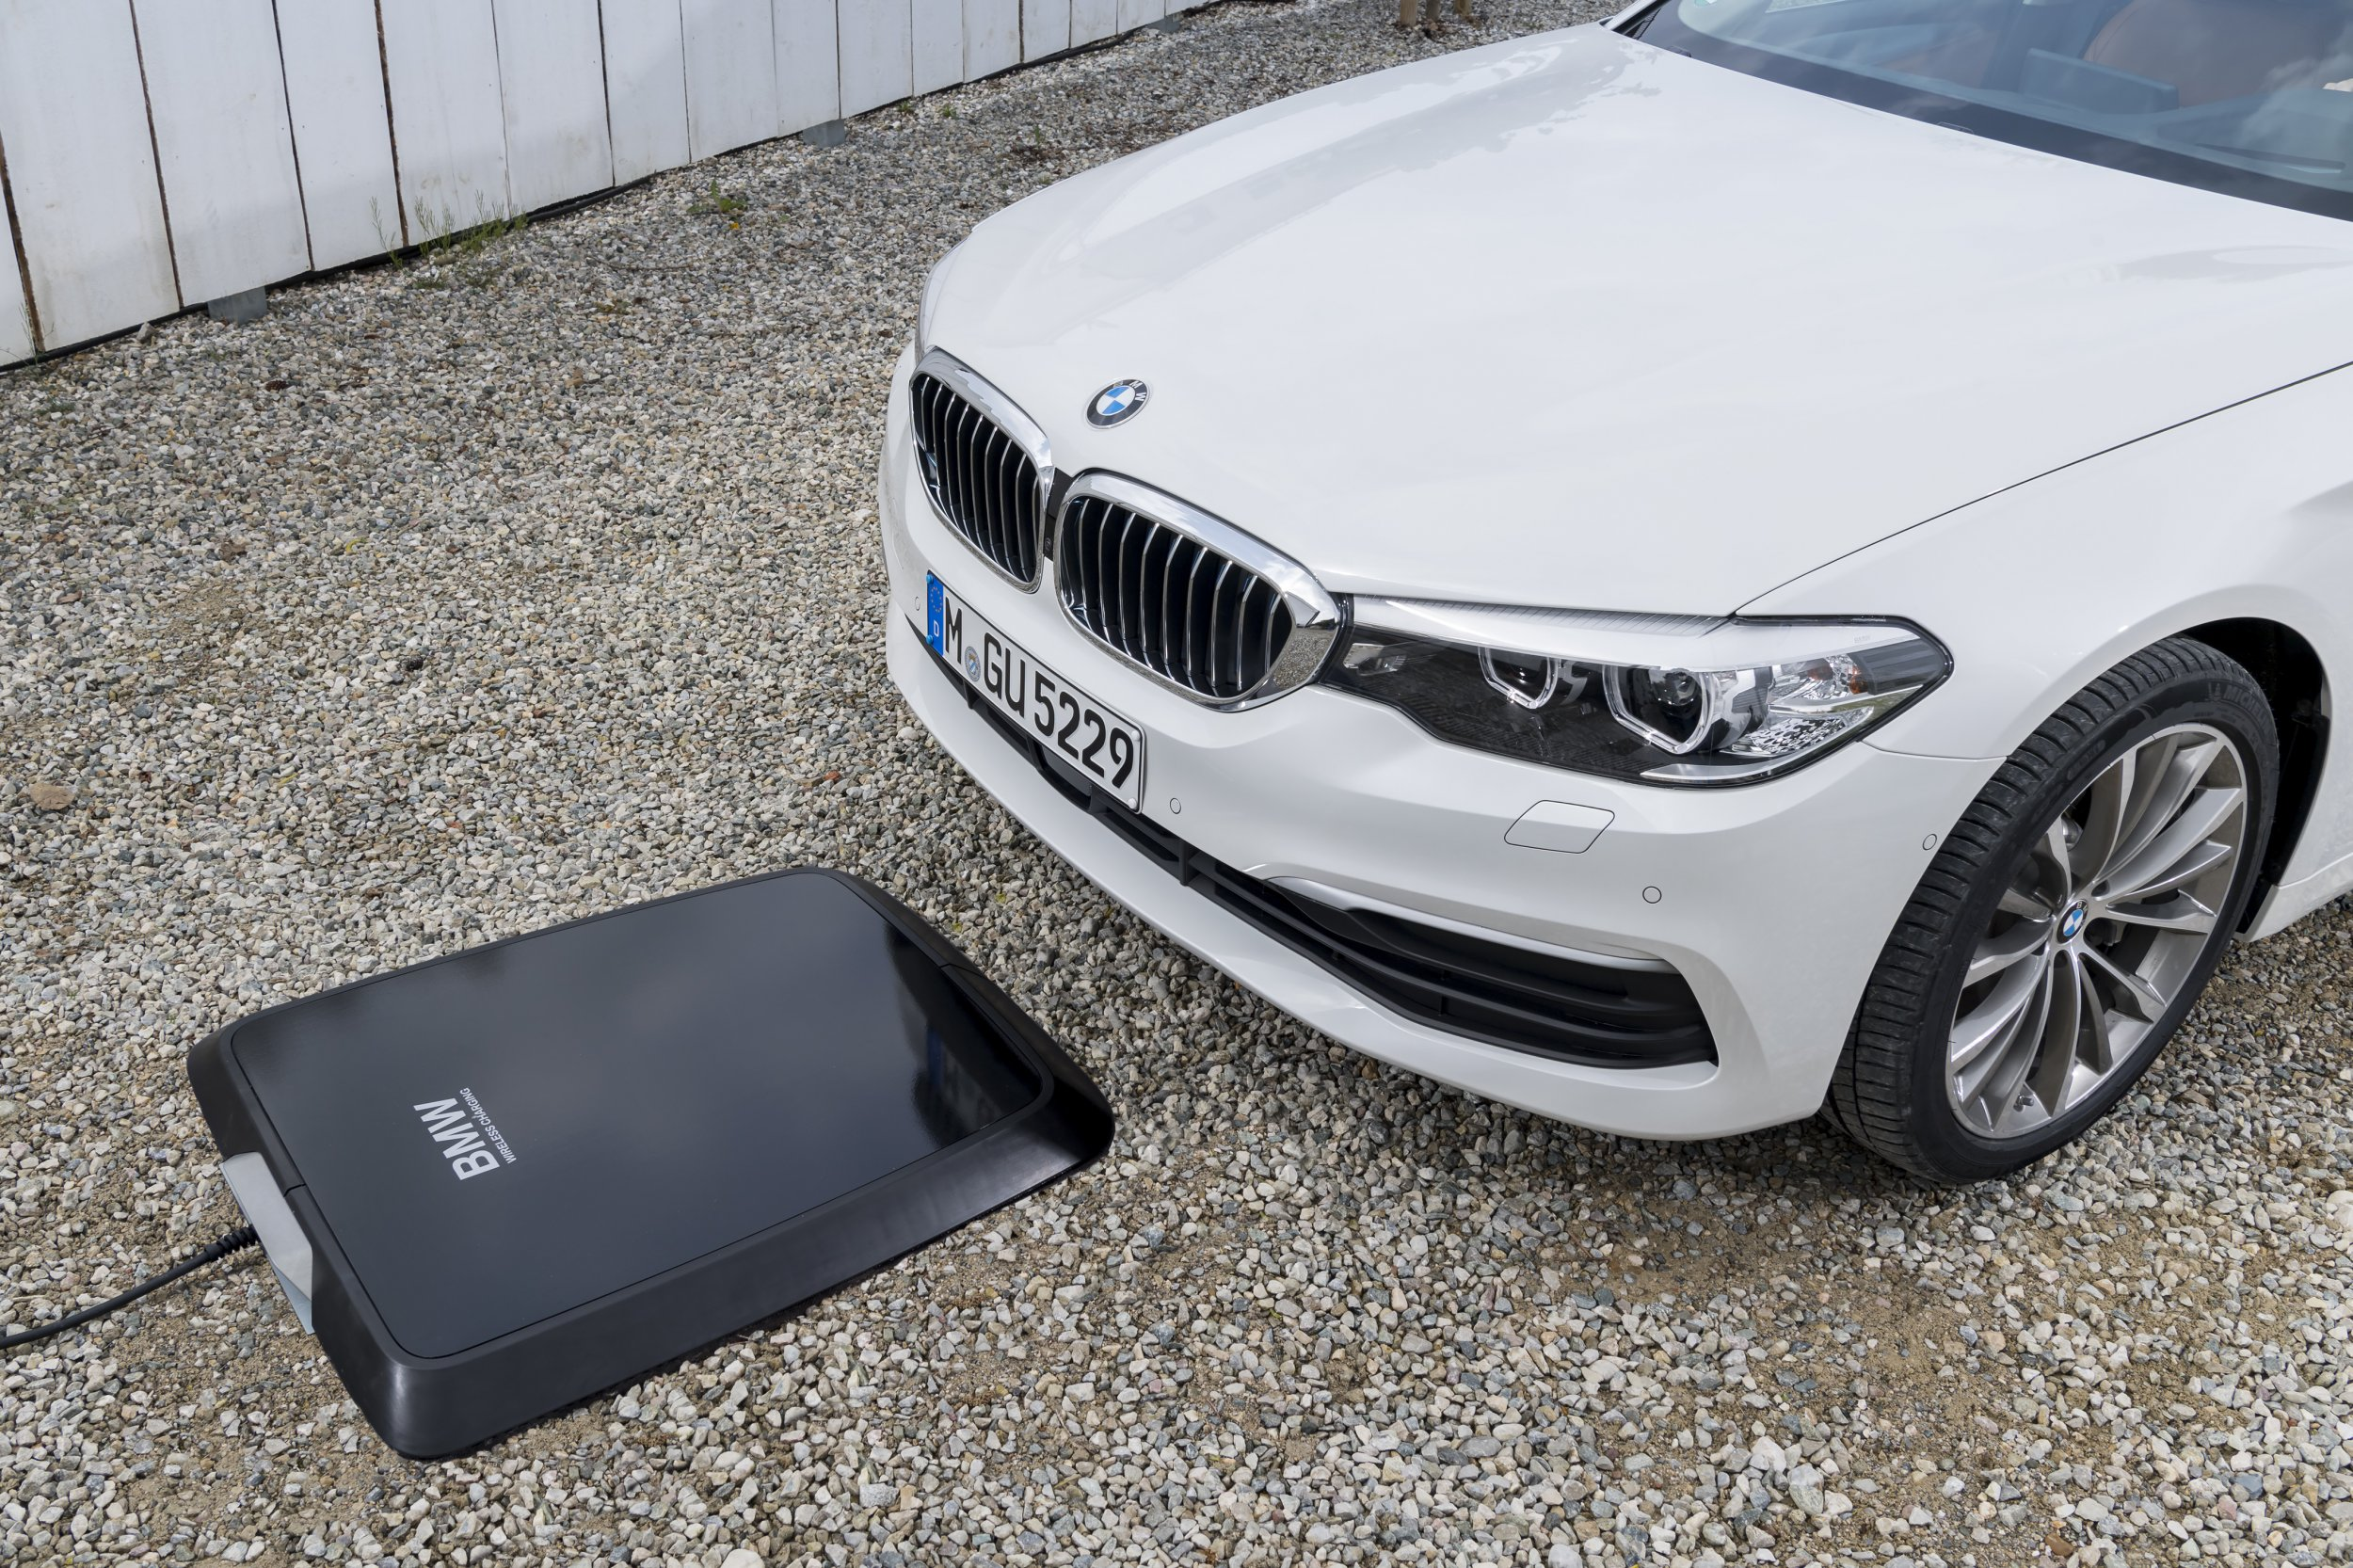 BMW wireless charger